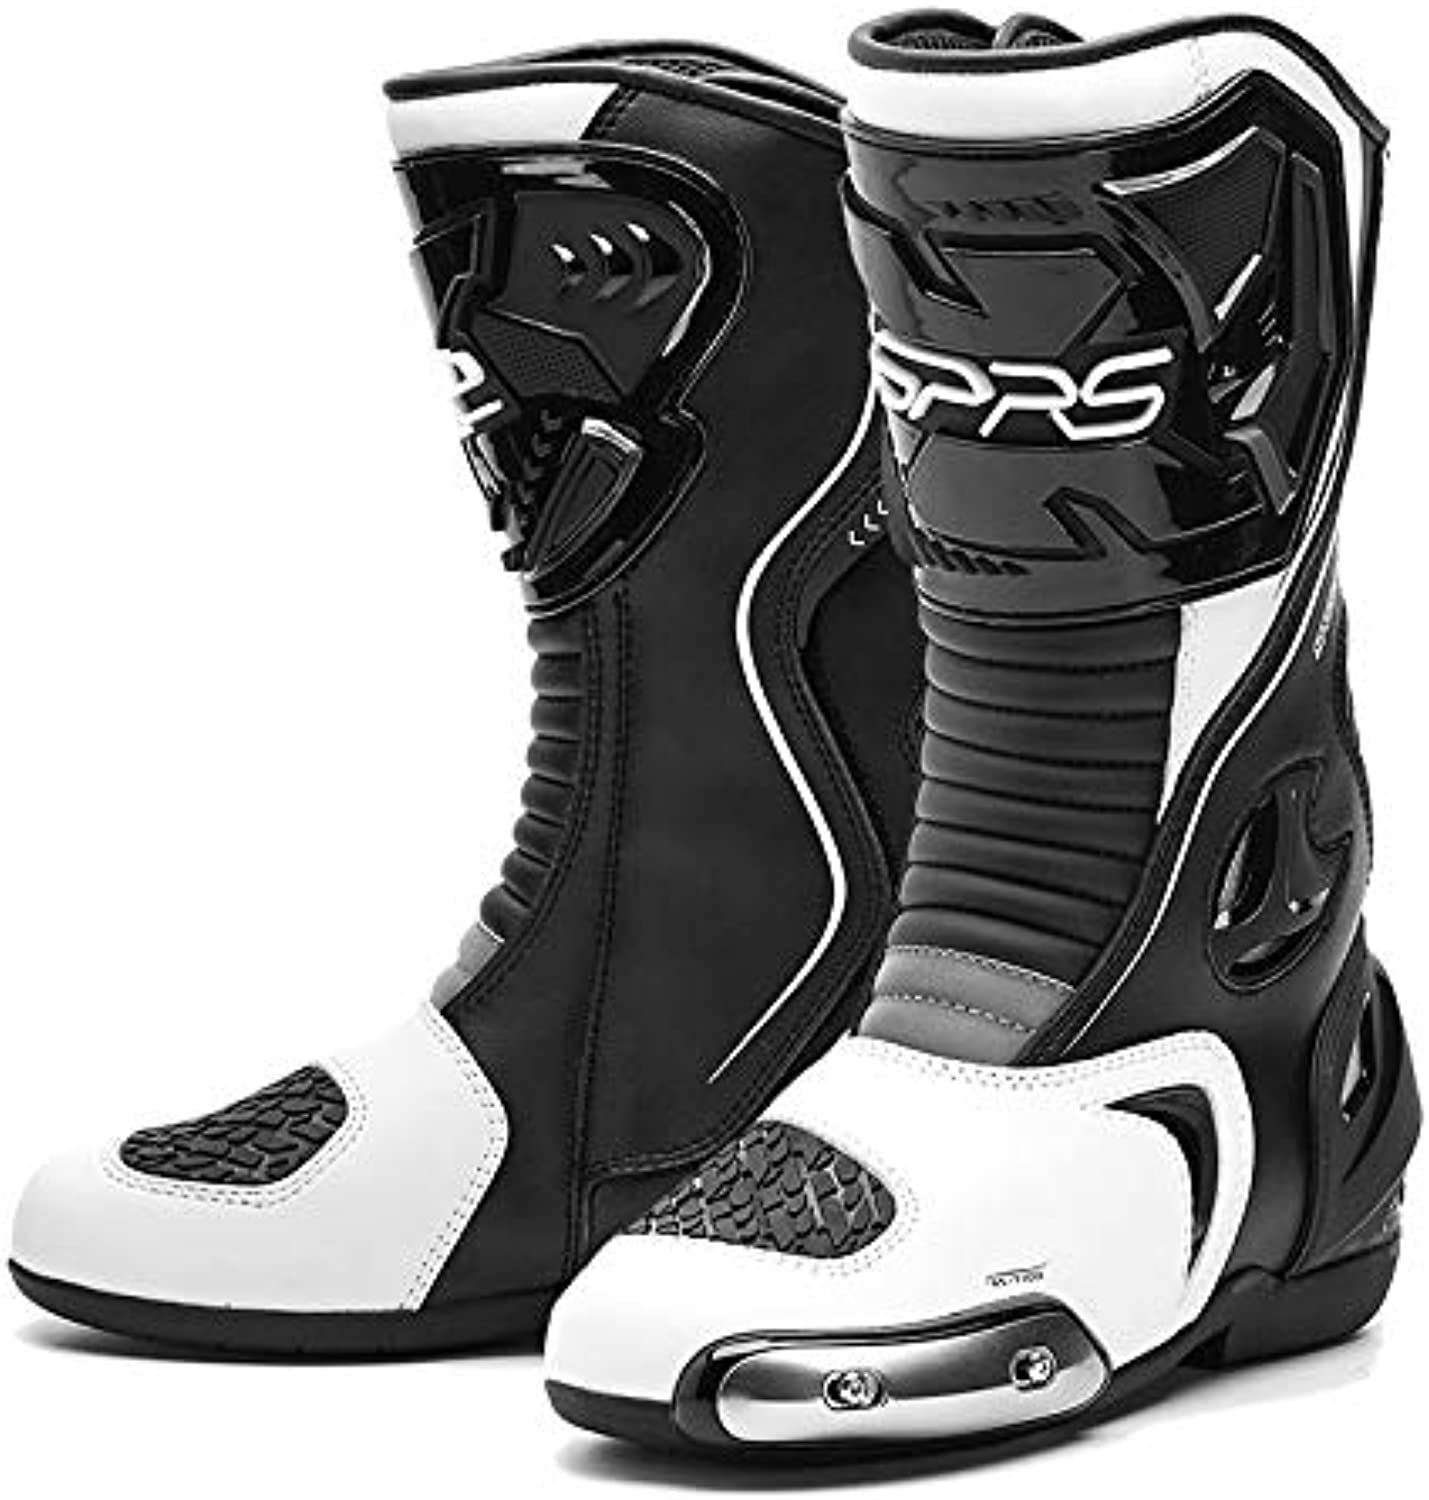 SPRS Motorcycle Riding Boots Male Athletic Footwear Motorcycle Racing shoes Drop Resistance AntiSlip Predective Equipment Speedway Road